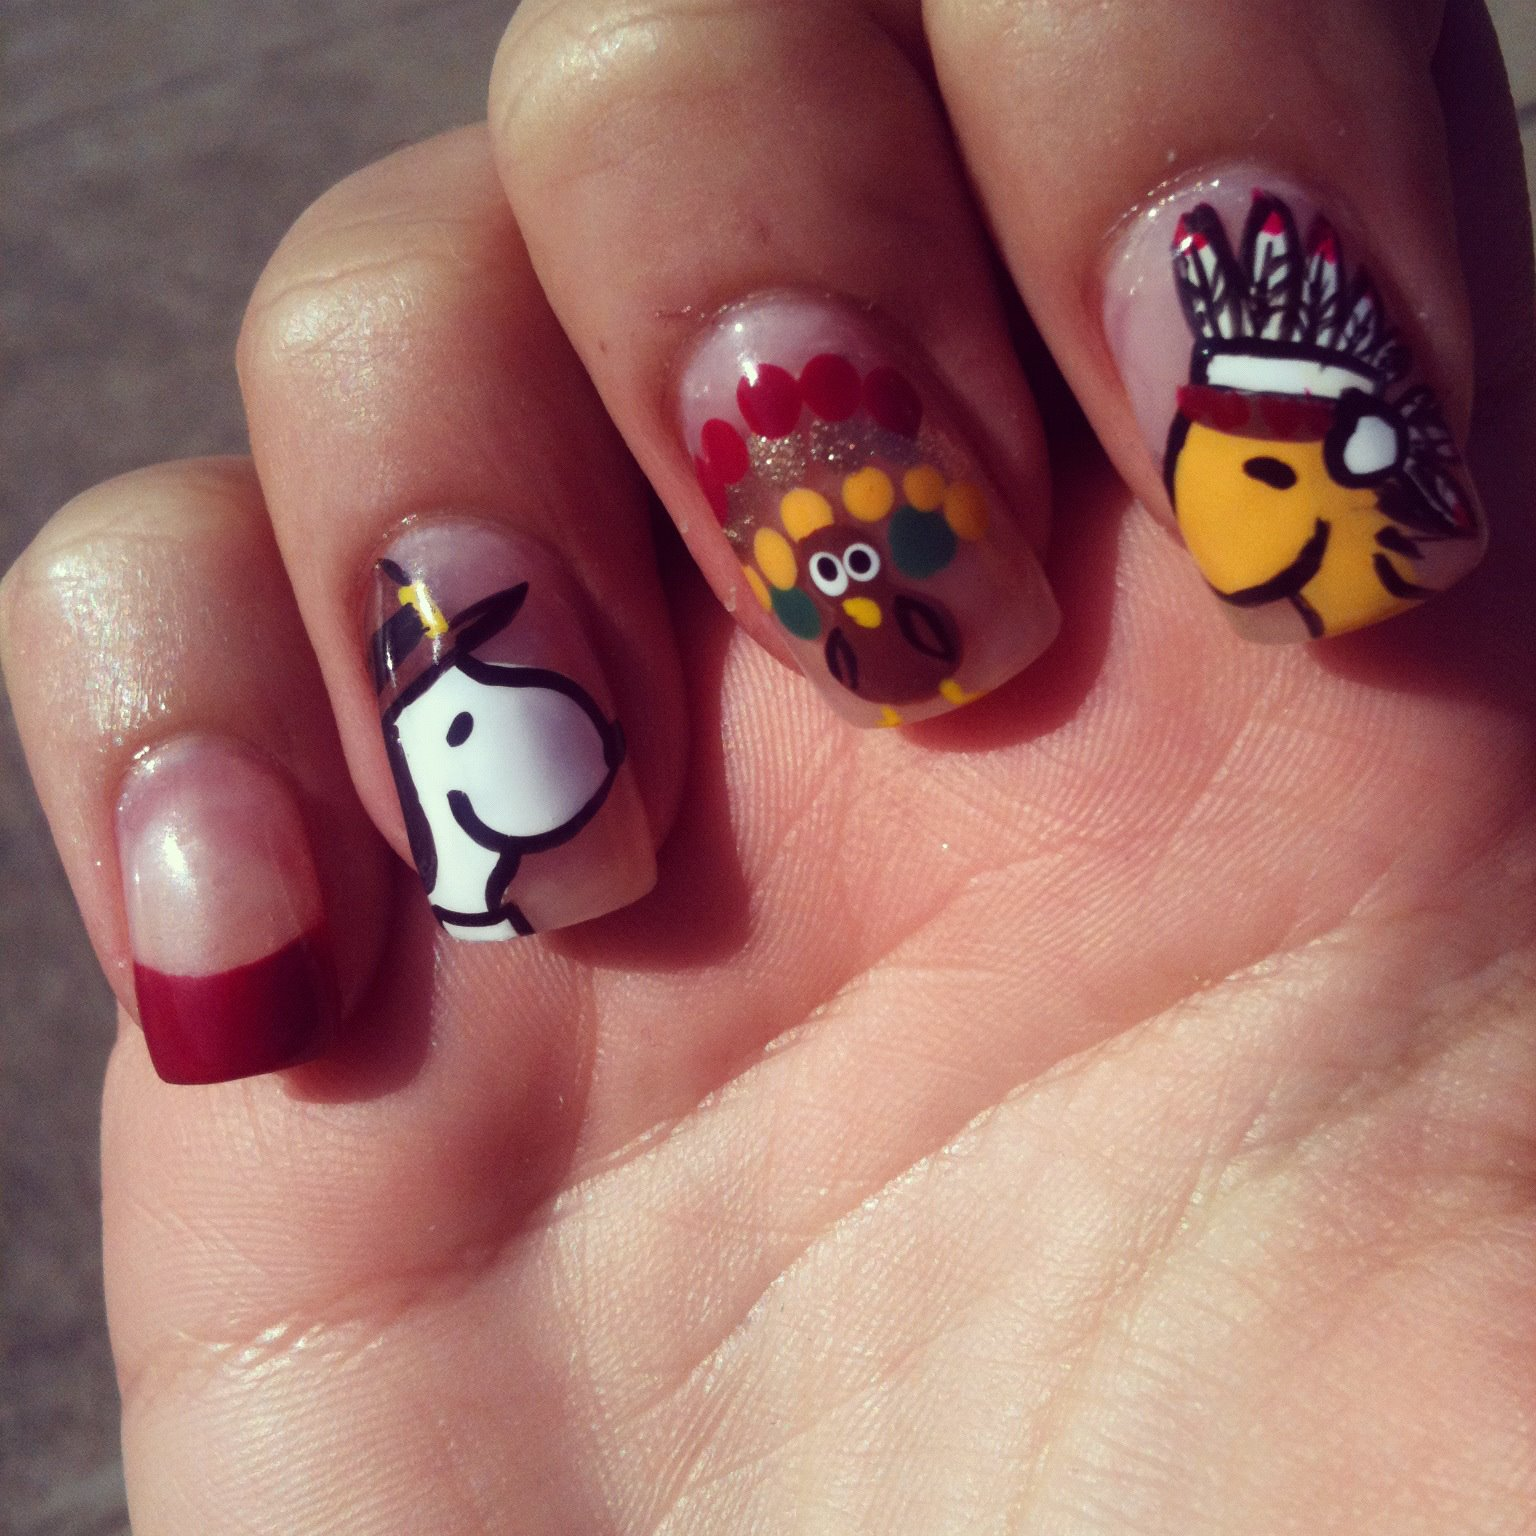 Festive thanksgiving nail designs the original mane n tail peanutsrandomenthusiast prinsesfo Image collections